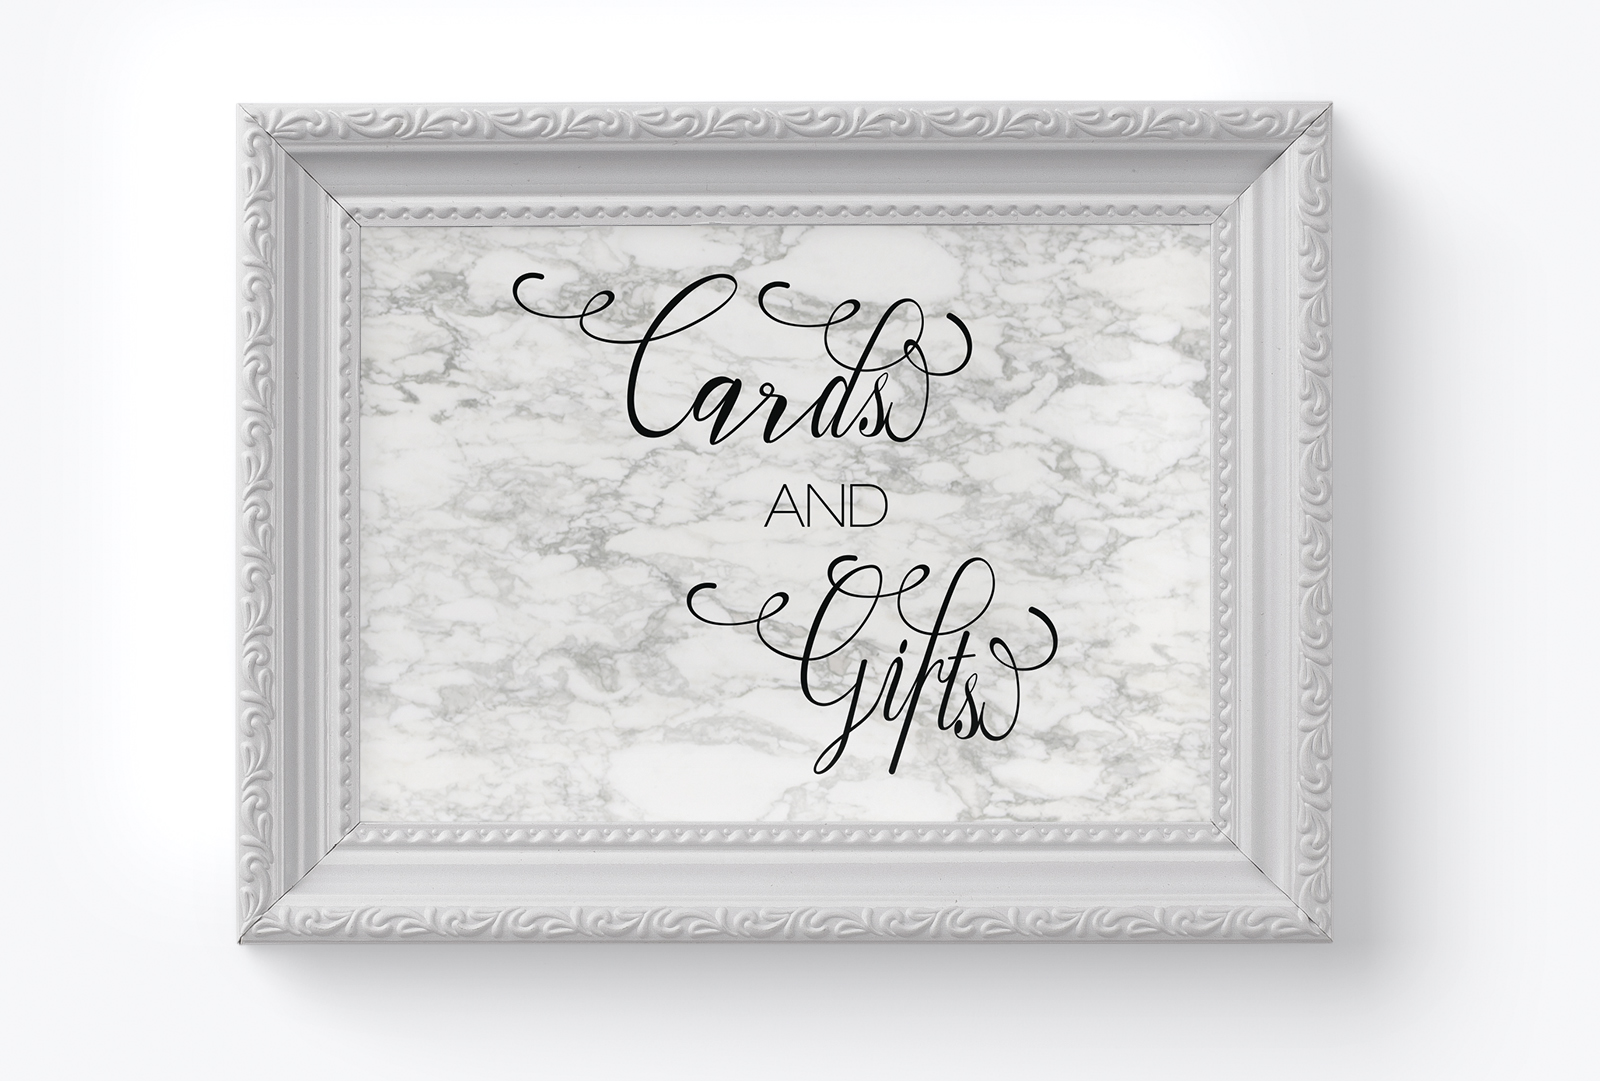 graphic relating to Cards and Gifts Sign Printable identified as Marble Marriage Playing cards and Presents Signal, Printable Marriage ceremony Playing cards and Presents Indications, Stylish Calligraphy Marble Wedding ceremony Reward Indicator, 3 Dimensions Reward Indication bought by way of Do-it-yourself